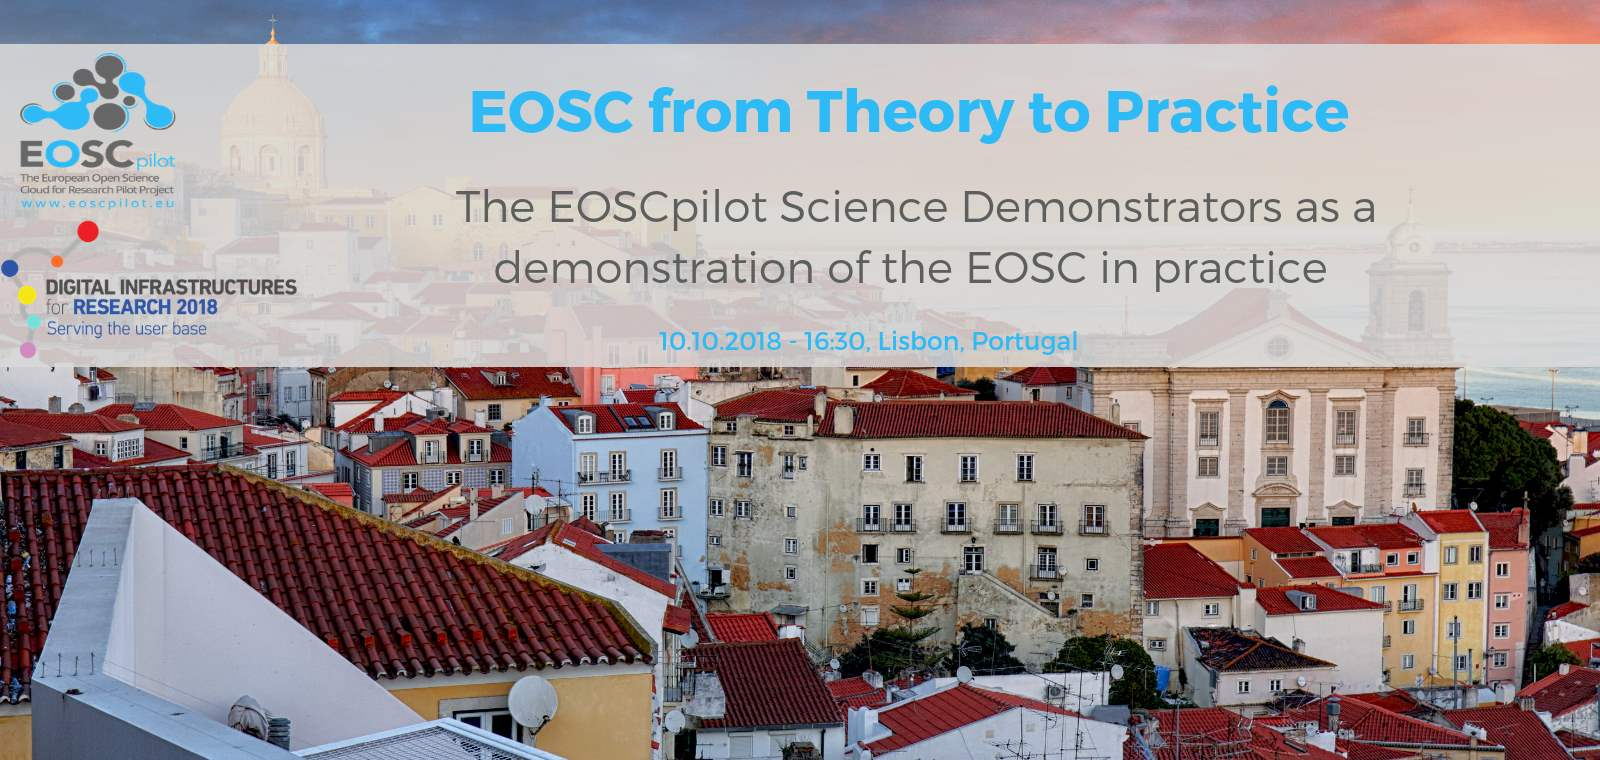 The EOSCpilot Science Demonstrators as a demonstration of the EOSC in practice